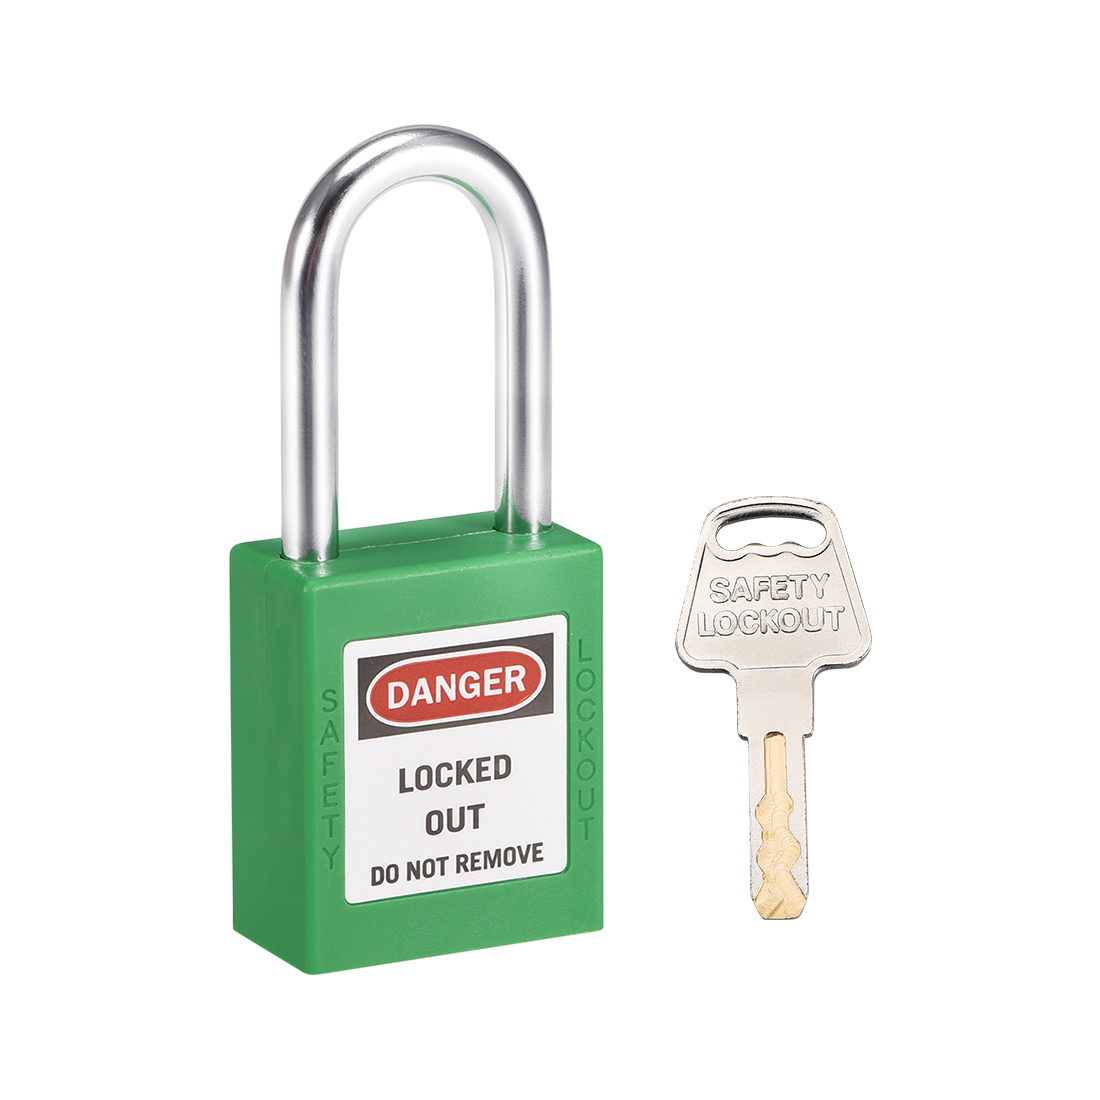 Lockout Tagout Locks 1-1/2 Inch Shackle Key Alike Safety Padlock Grass Green